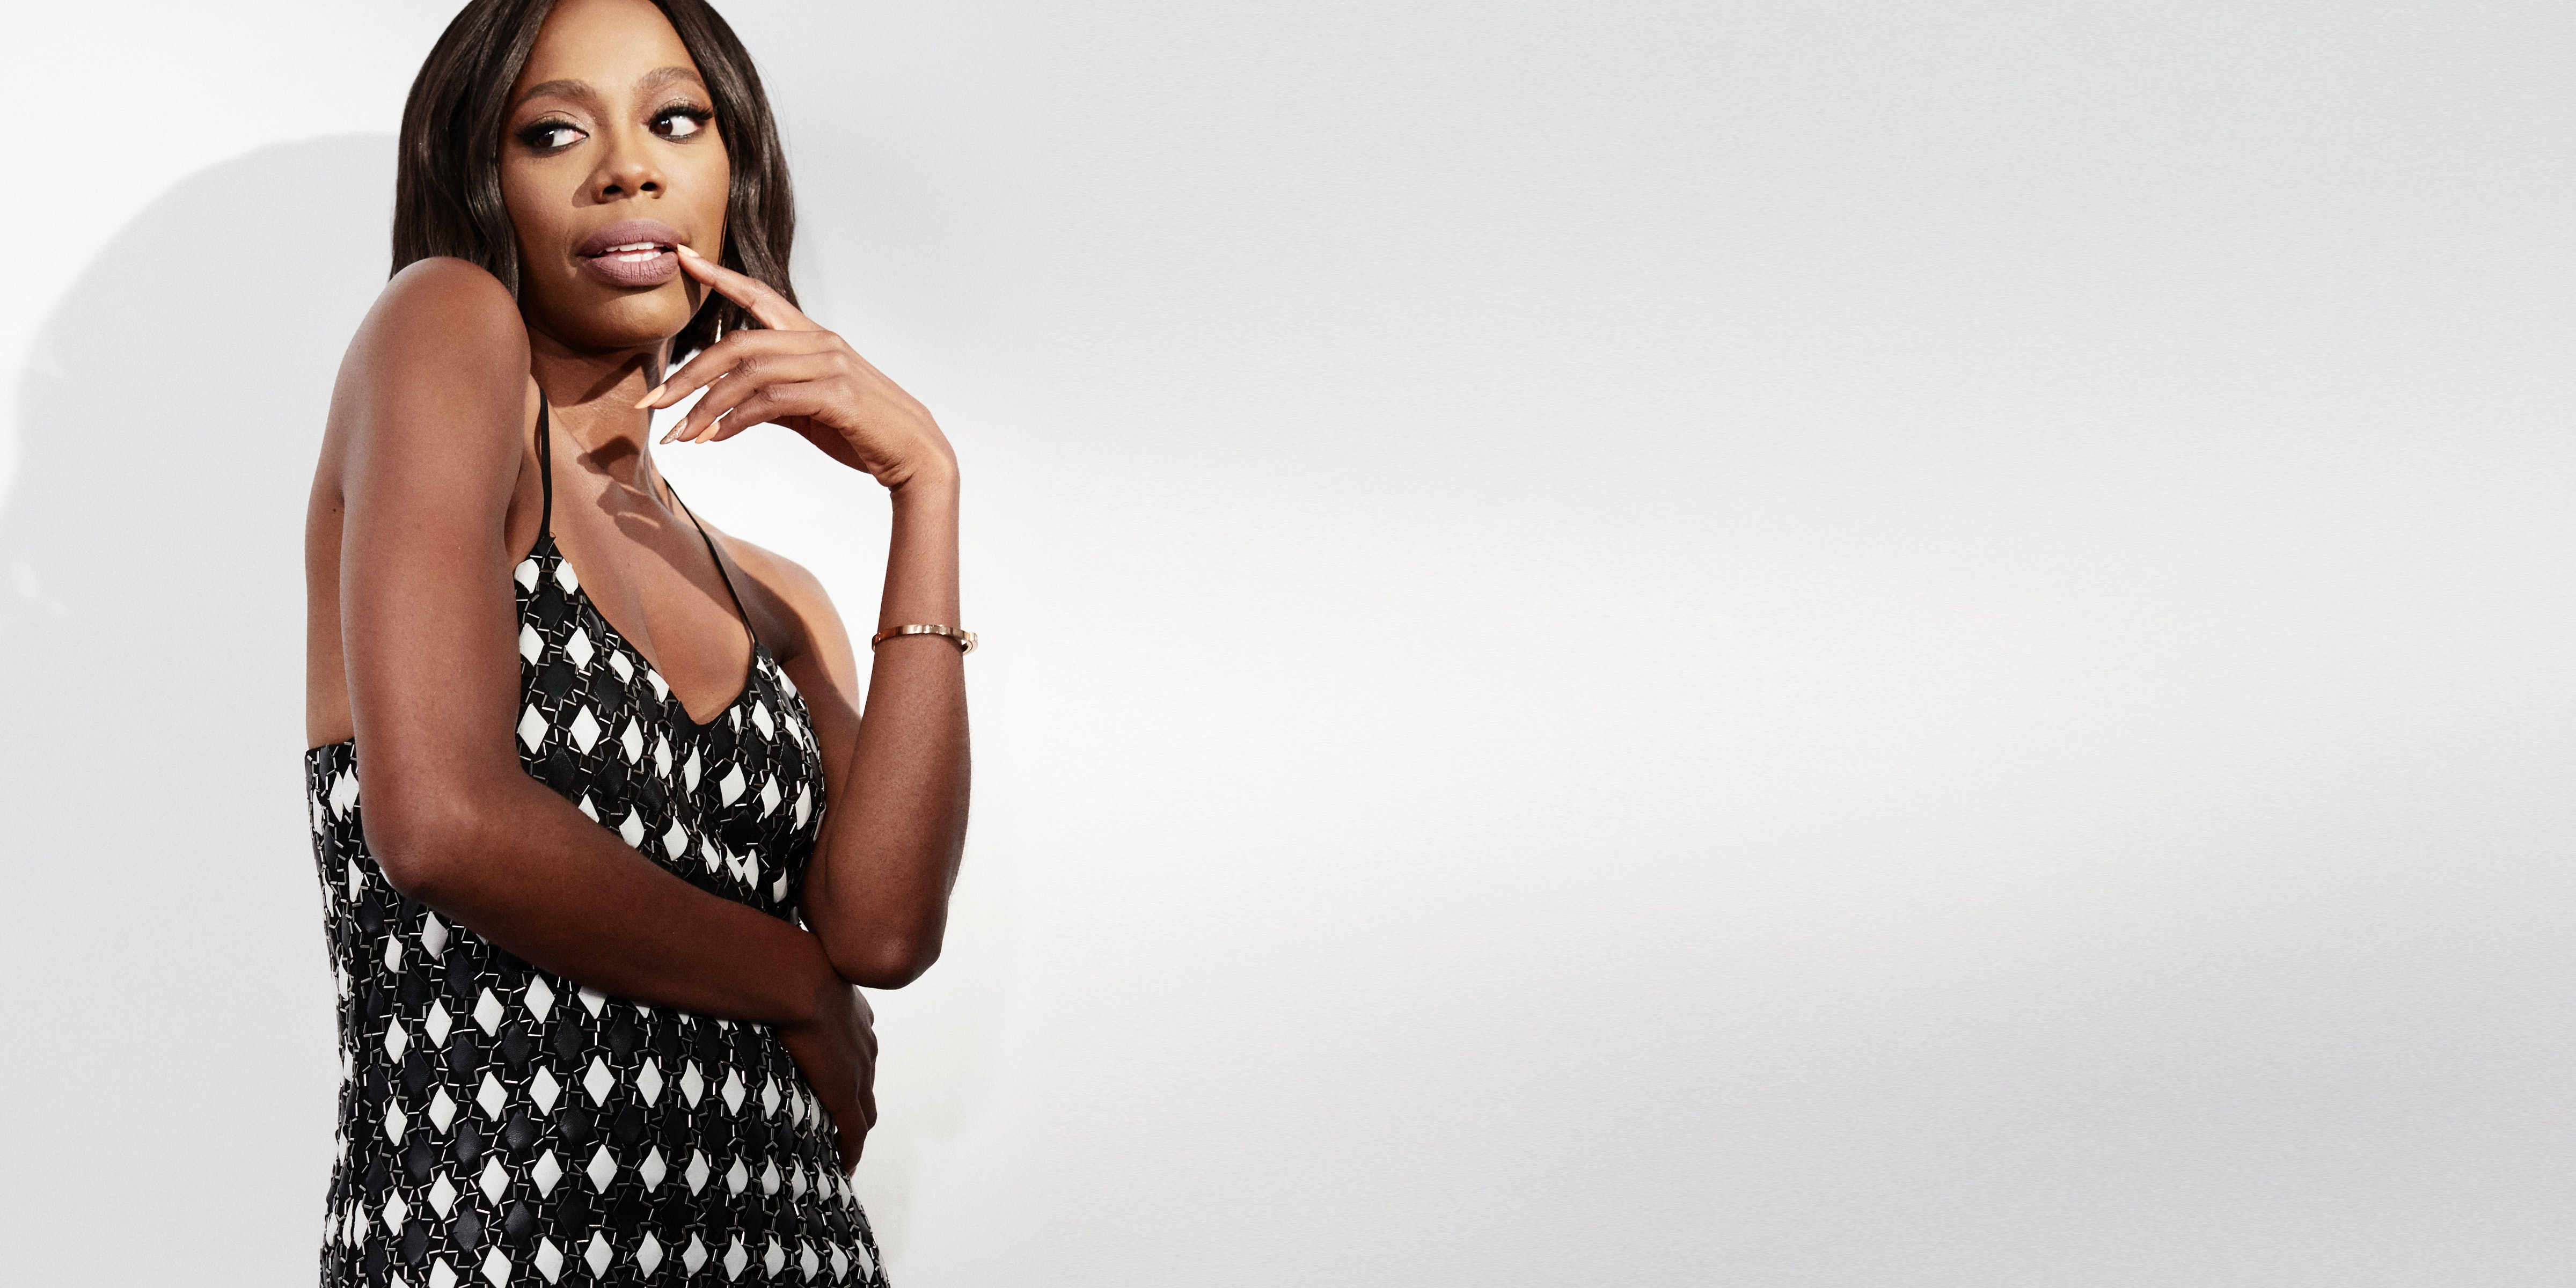 a43f325d20e404 Yvonne Orji On Why 'Insecure' Refuses To Explain Black Culture To A Mixed  Audience